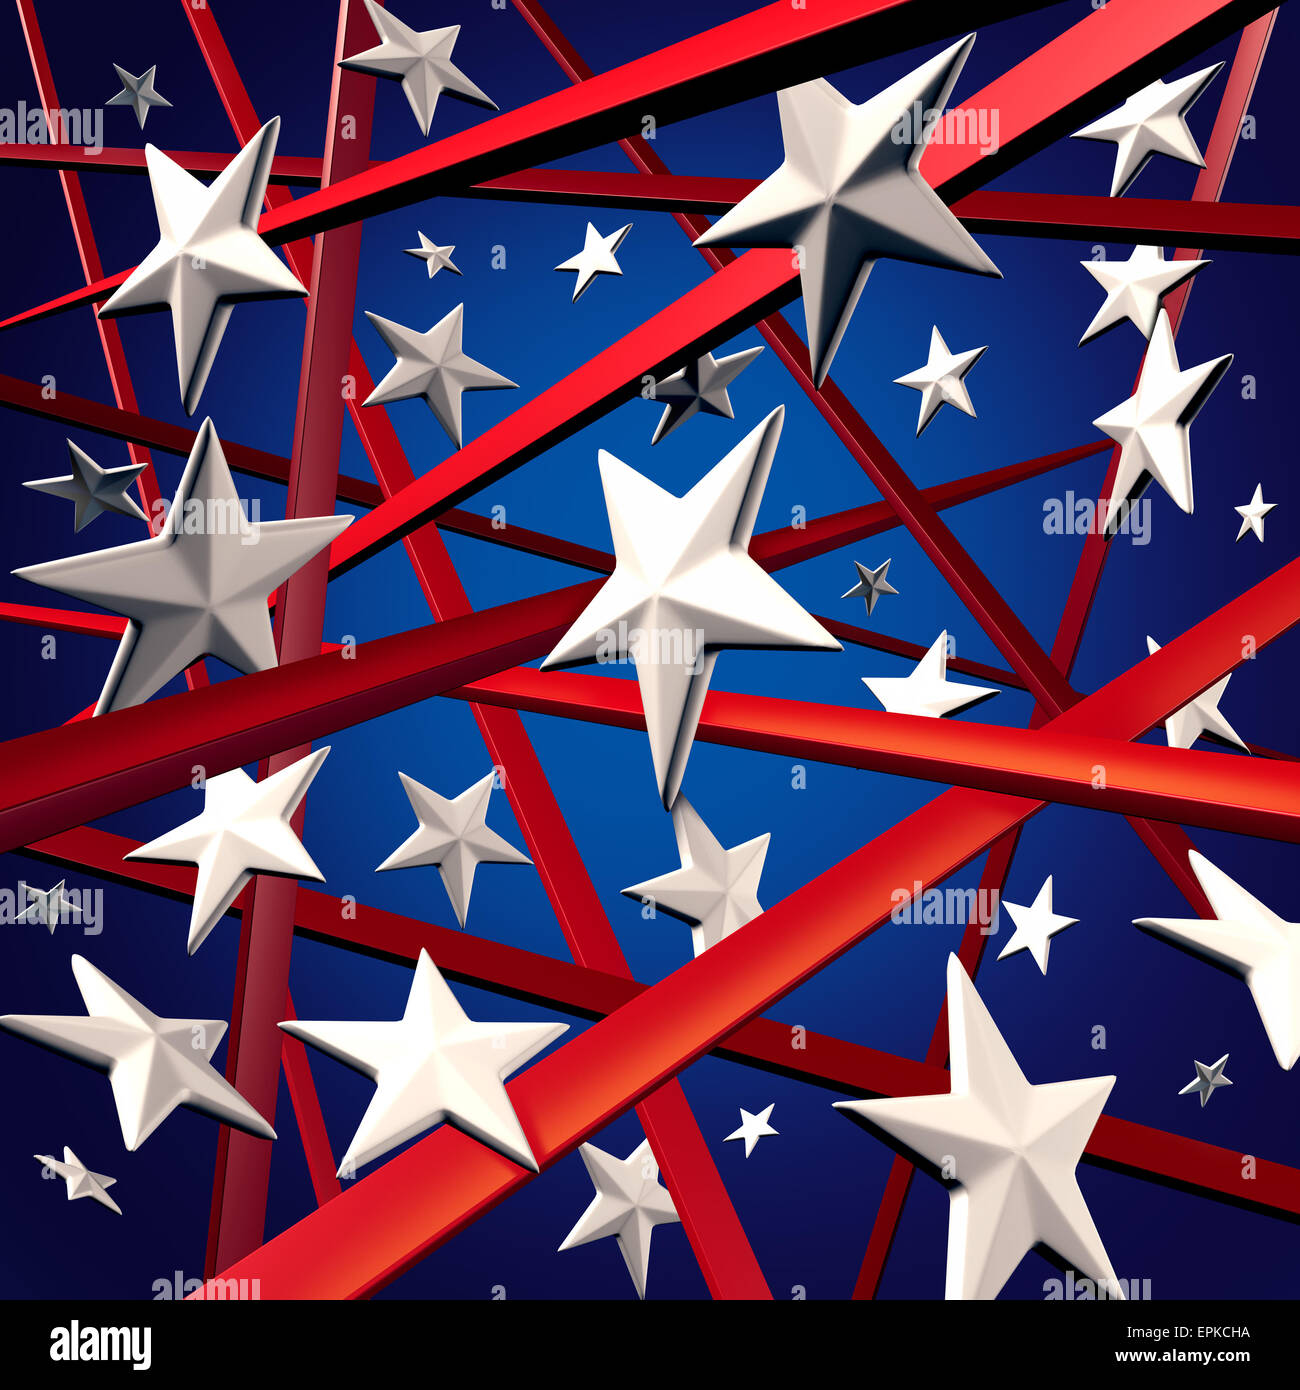 American stars and stripes and United States three dimenaional flag background design element with red white and - Stock Image